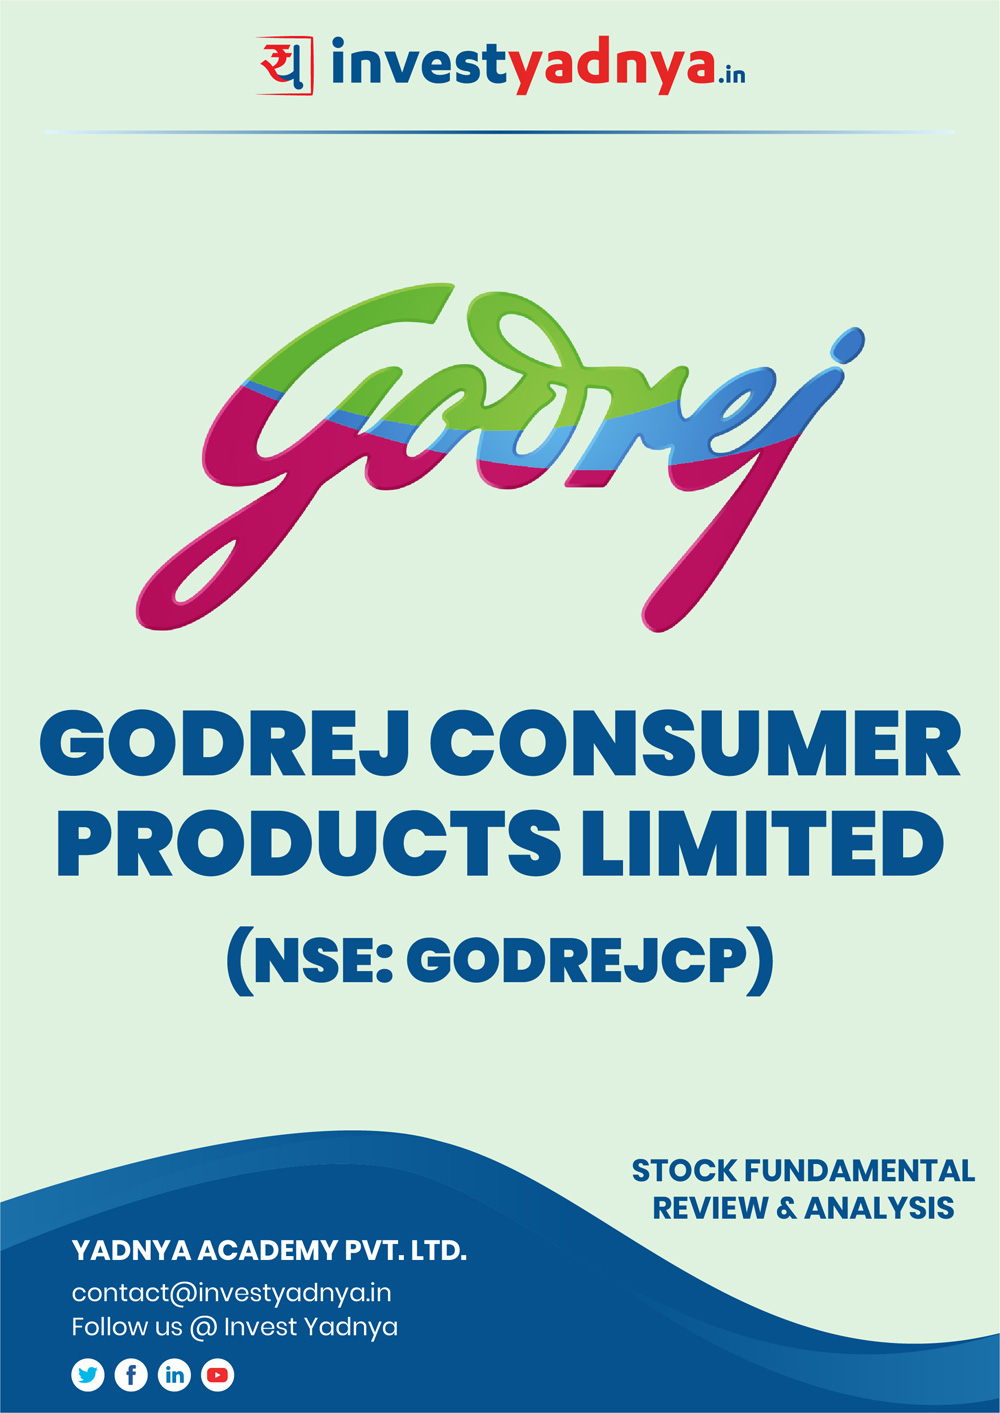 Godrej Consumer Products Ltd (GCPL) Company/Stock Review & Analysis based on Q32018-19 and FY2017 18 data. The book contains Fundamental Analysis of the company considering both Quantitative (Financial) and Qualitative Parameters.